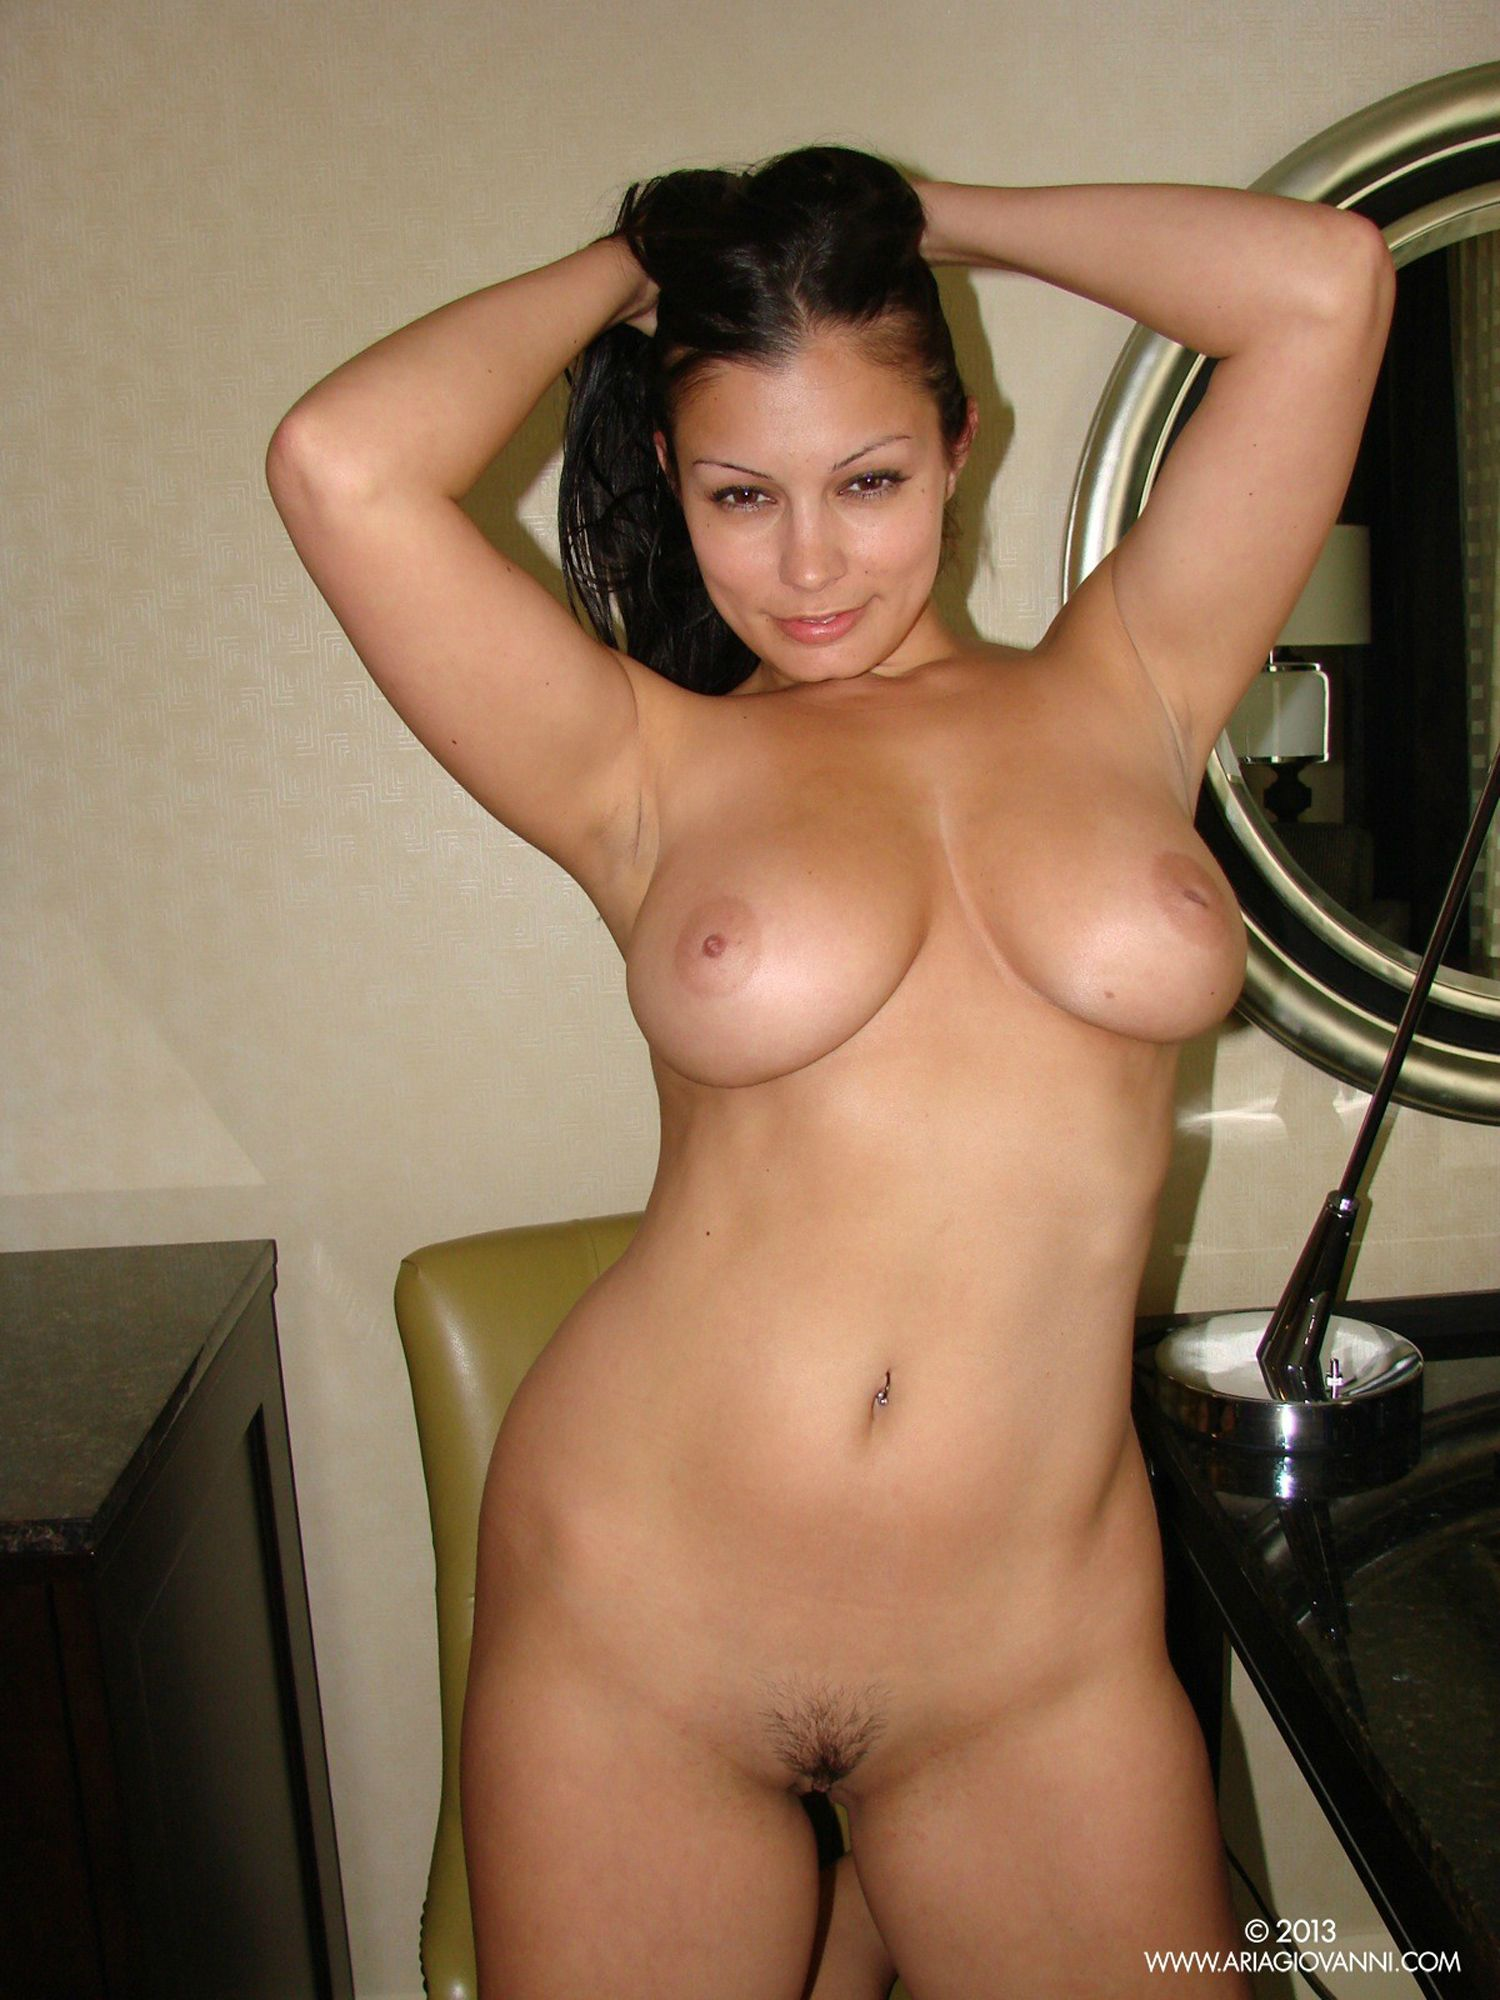 Aria giovanni stunning body in one of her first photo shoots 1